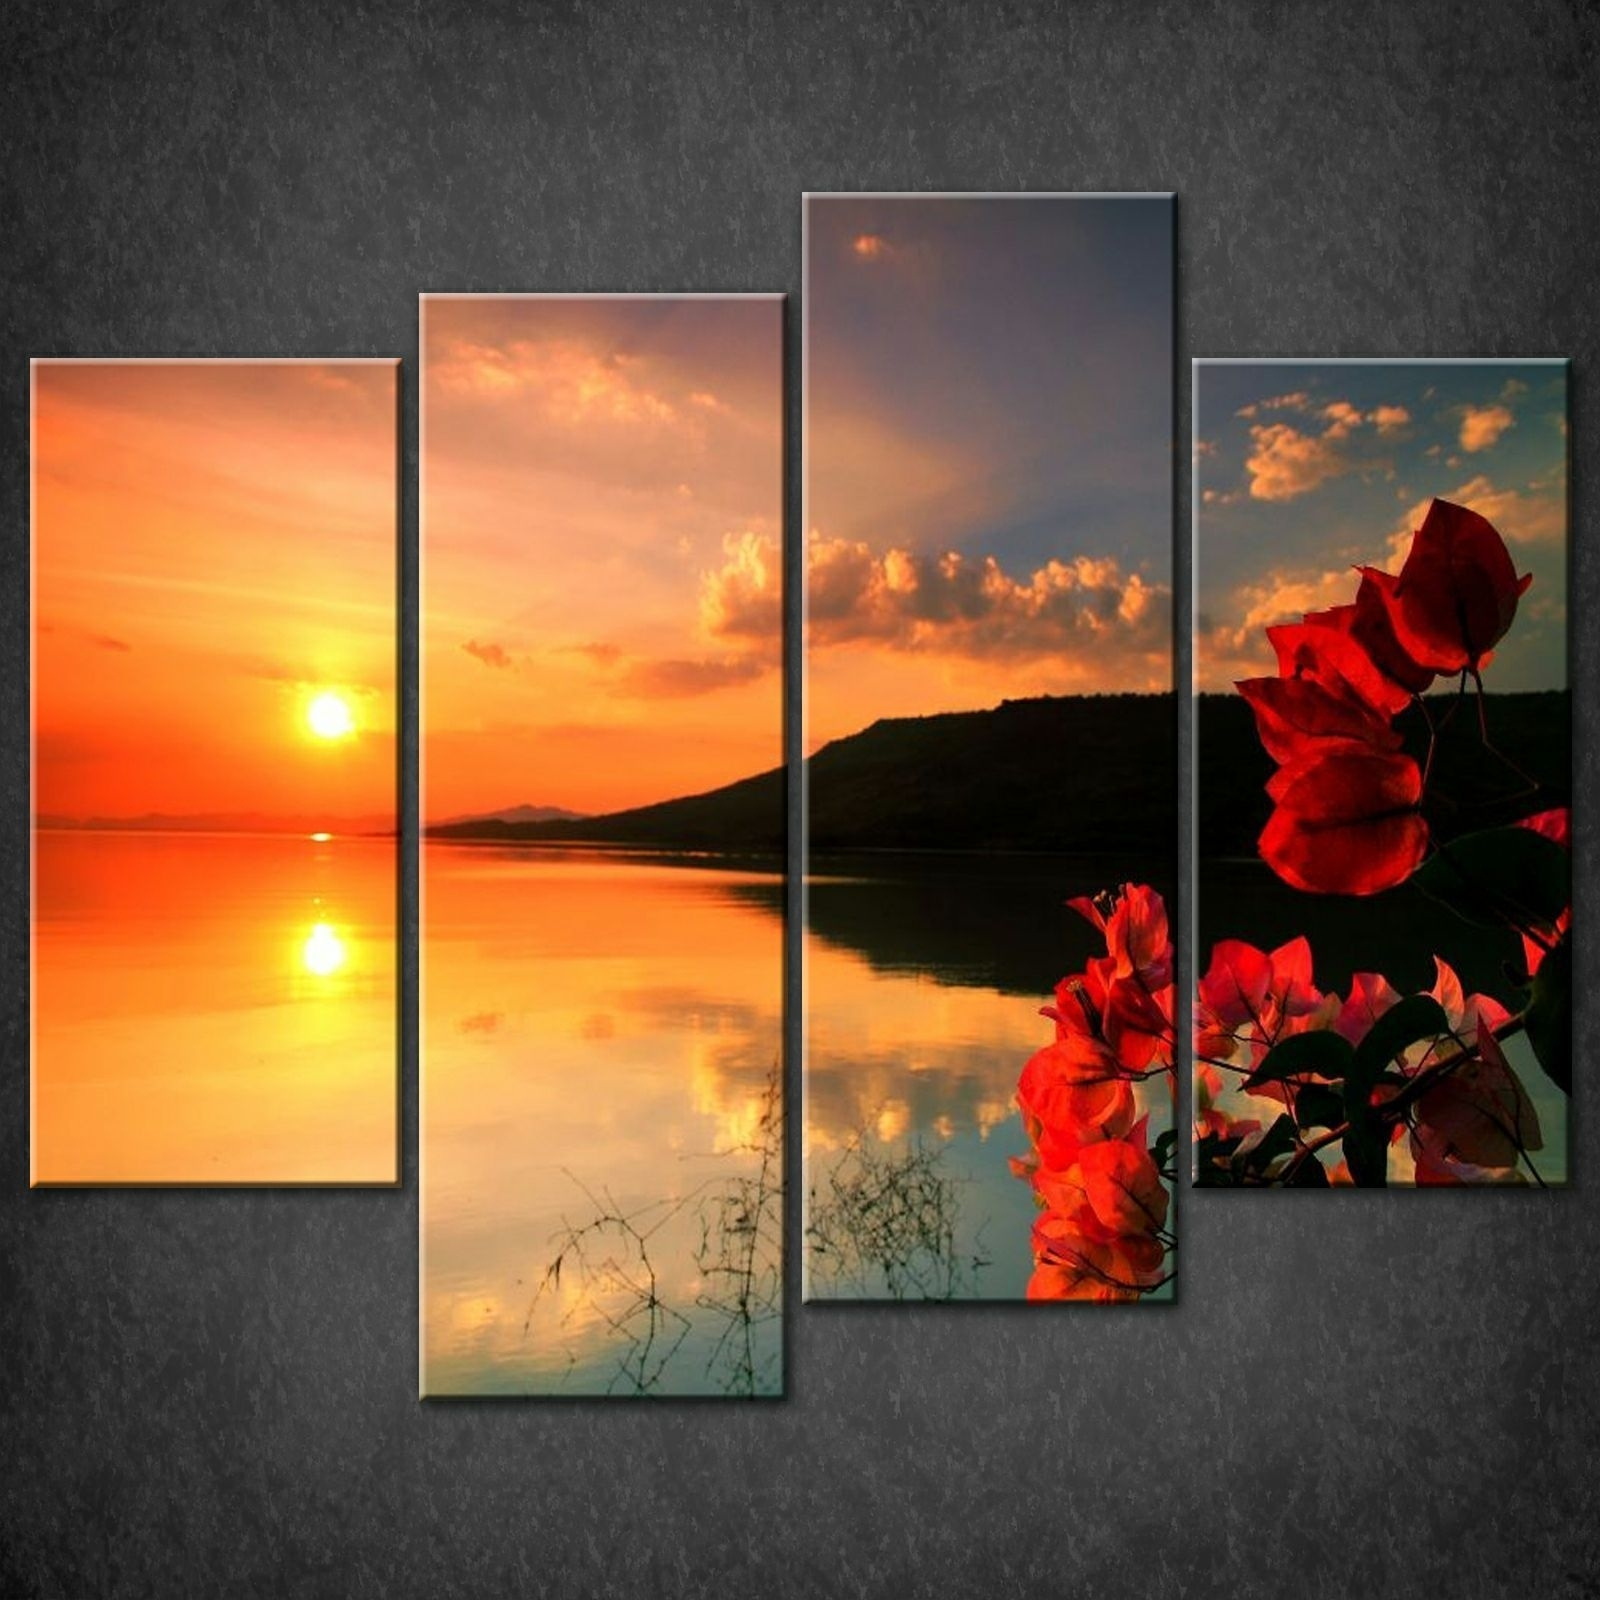 Red Calm Sunset Split Canvas Print Picture Wall Art Within Most Up To Date Wall Canvas Art (Gallery 9 of 15)